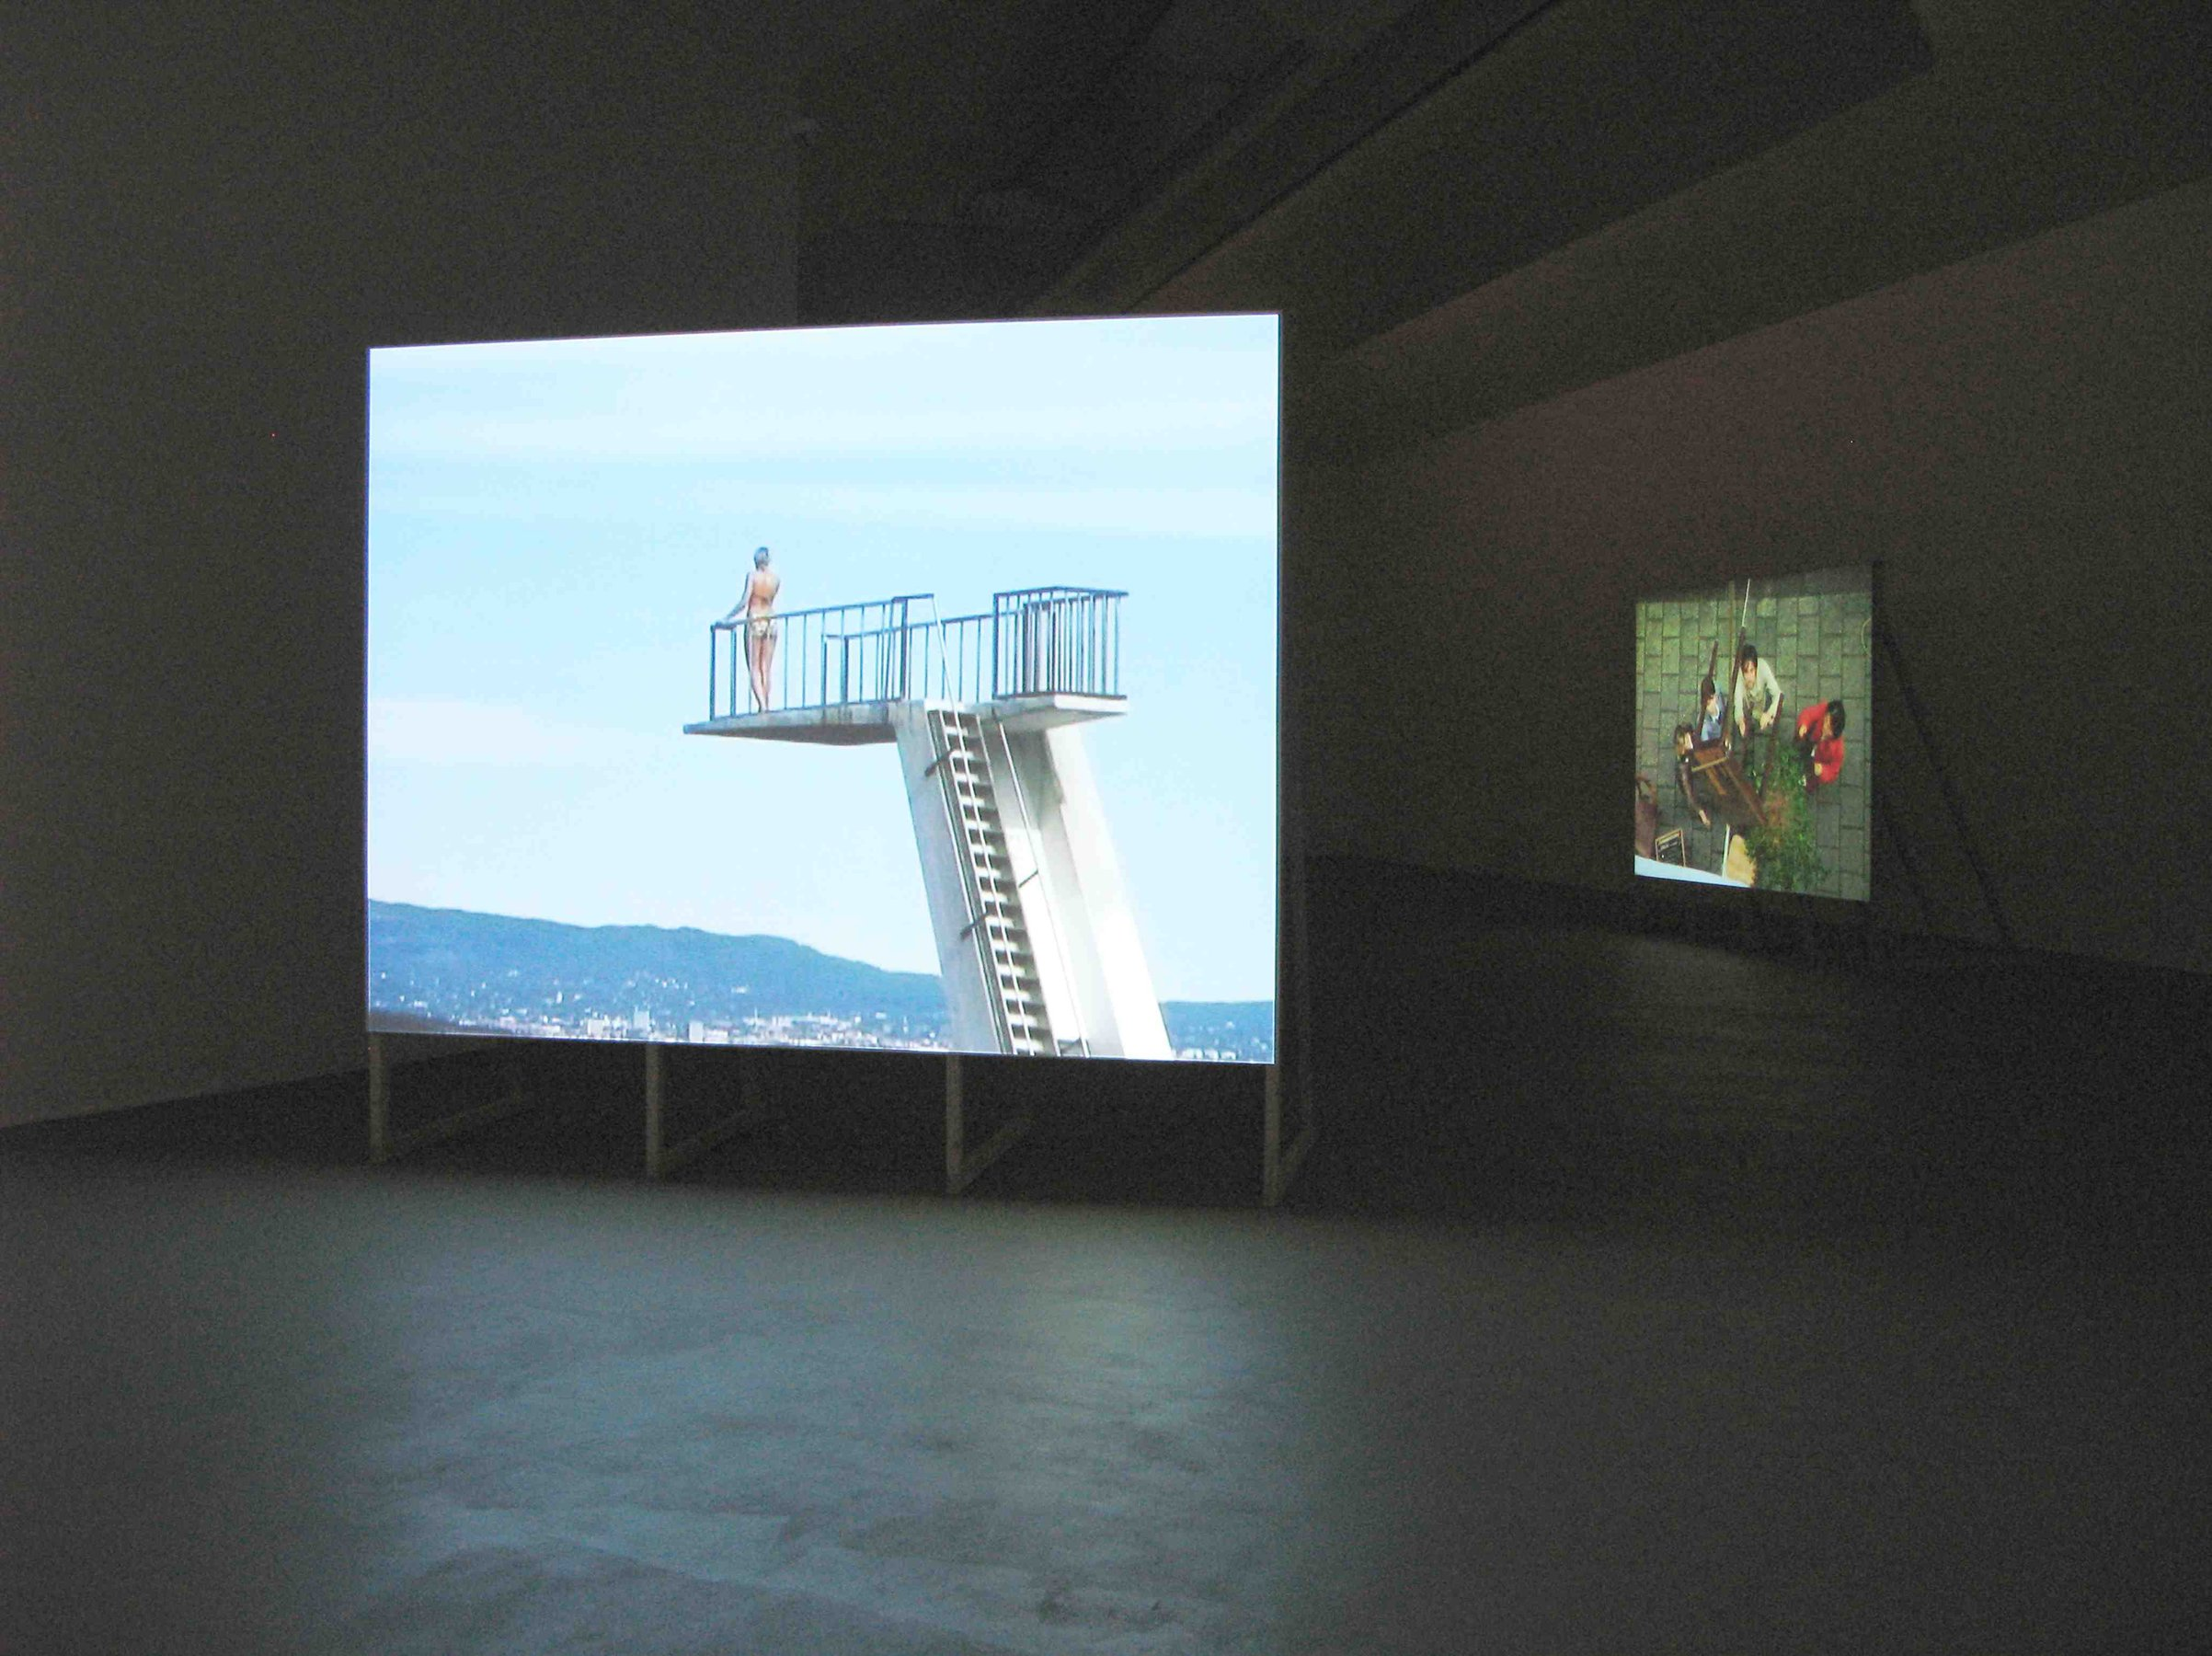 Where She is at, 2001, DV, 07'35'', loop, installation view, Museum für Gegenwartskunst, Basel, 2007